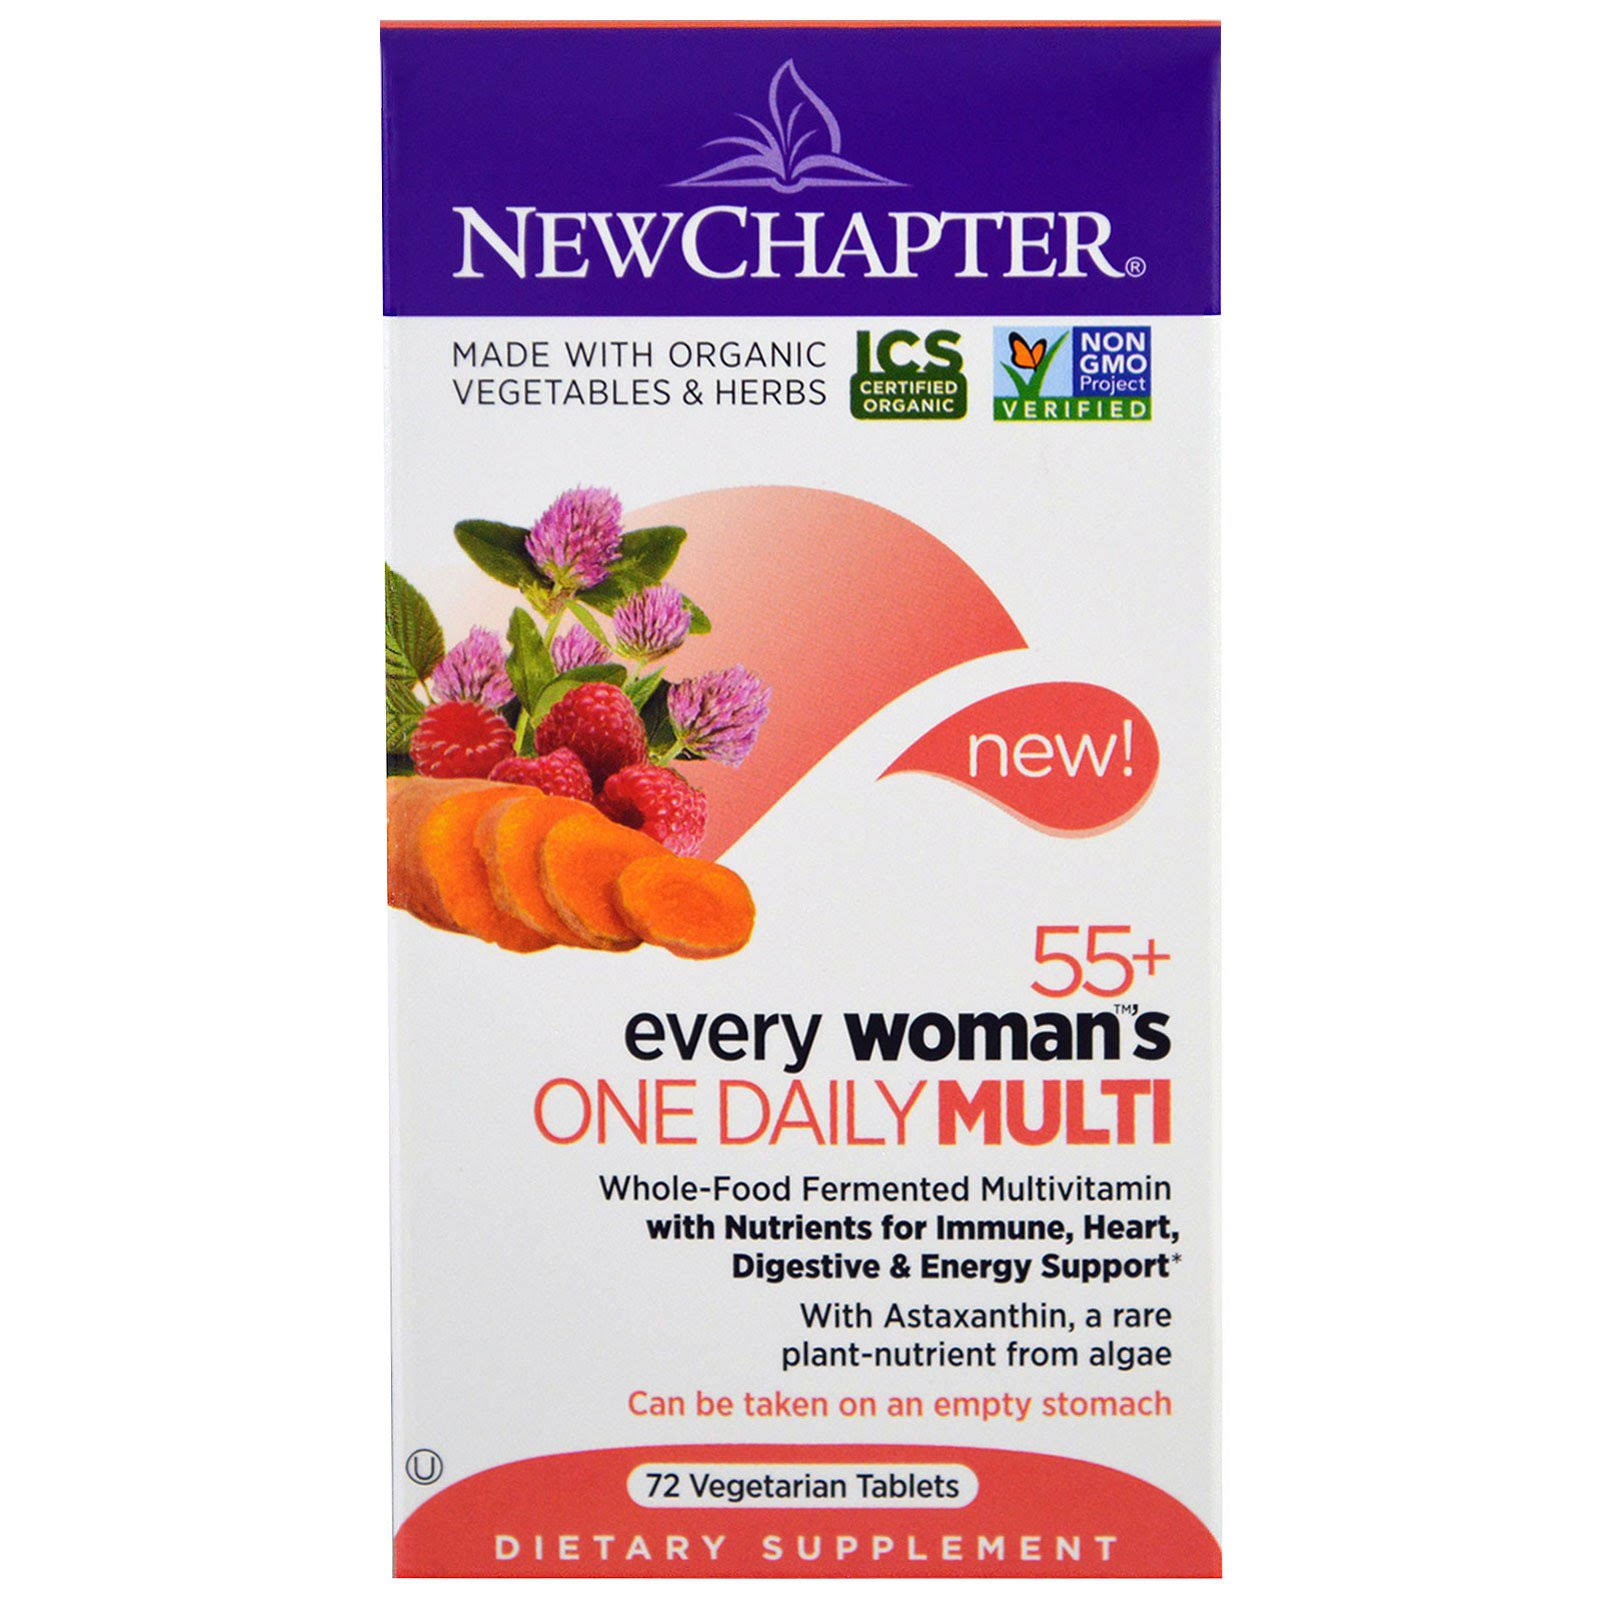 New Chapter Multi, One Daily, Every Woman's 55+, Vegetarian Tablets - 72 tablets